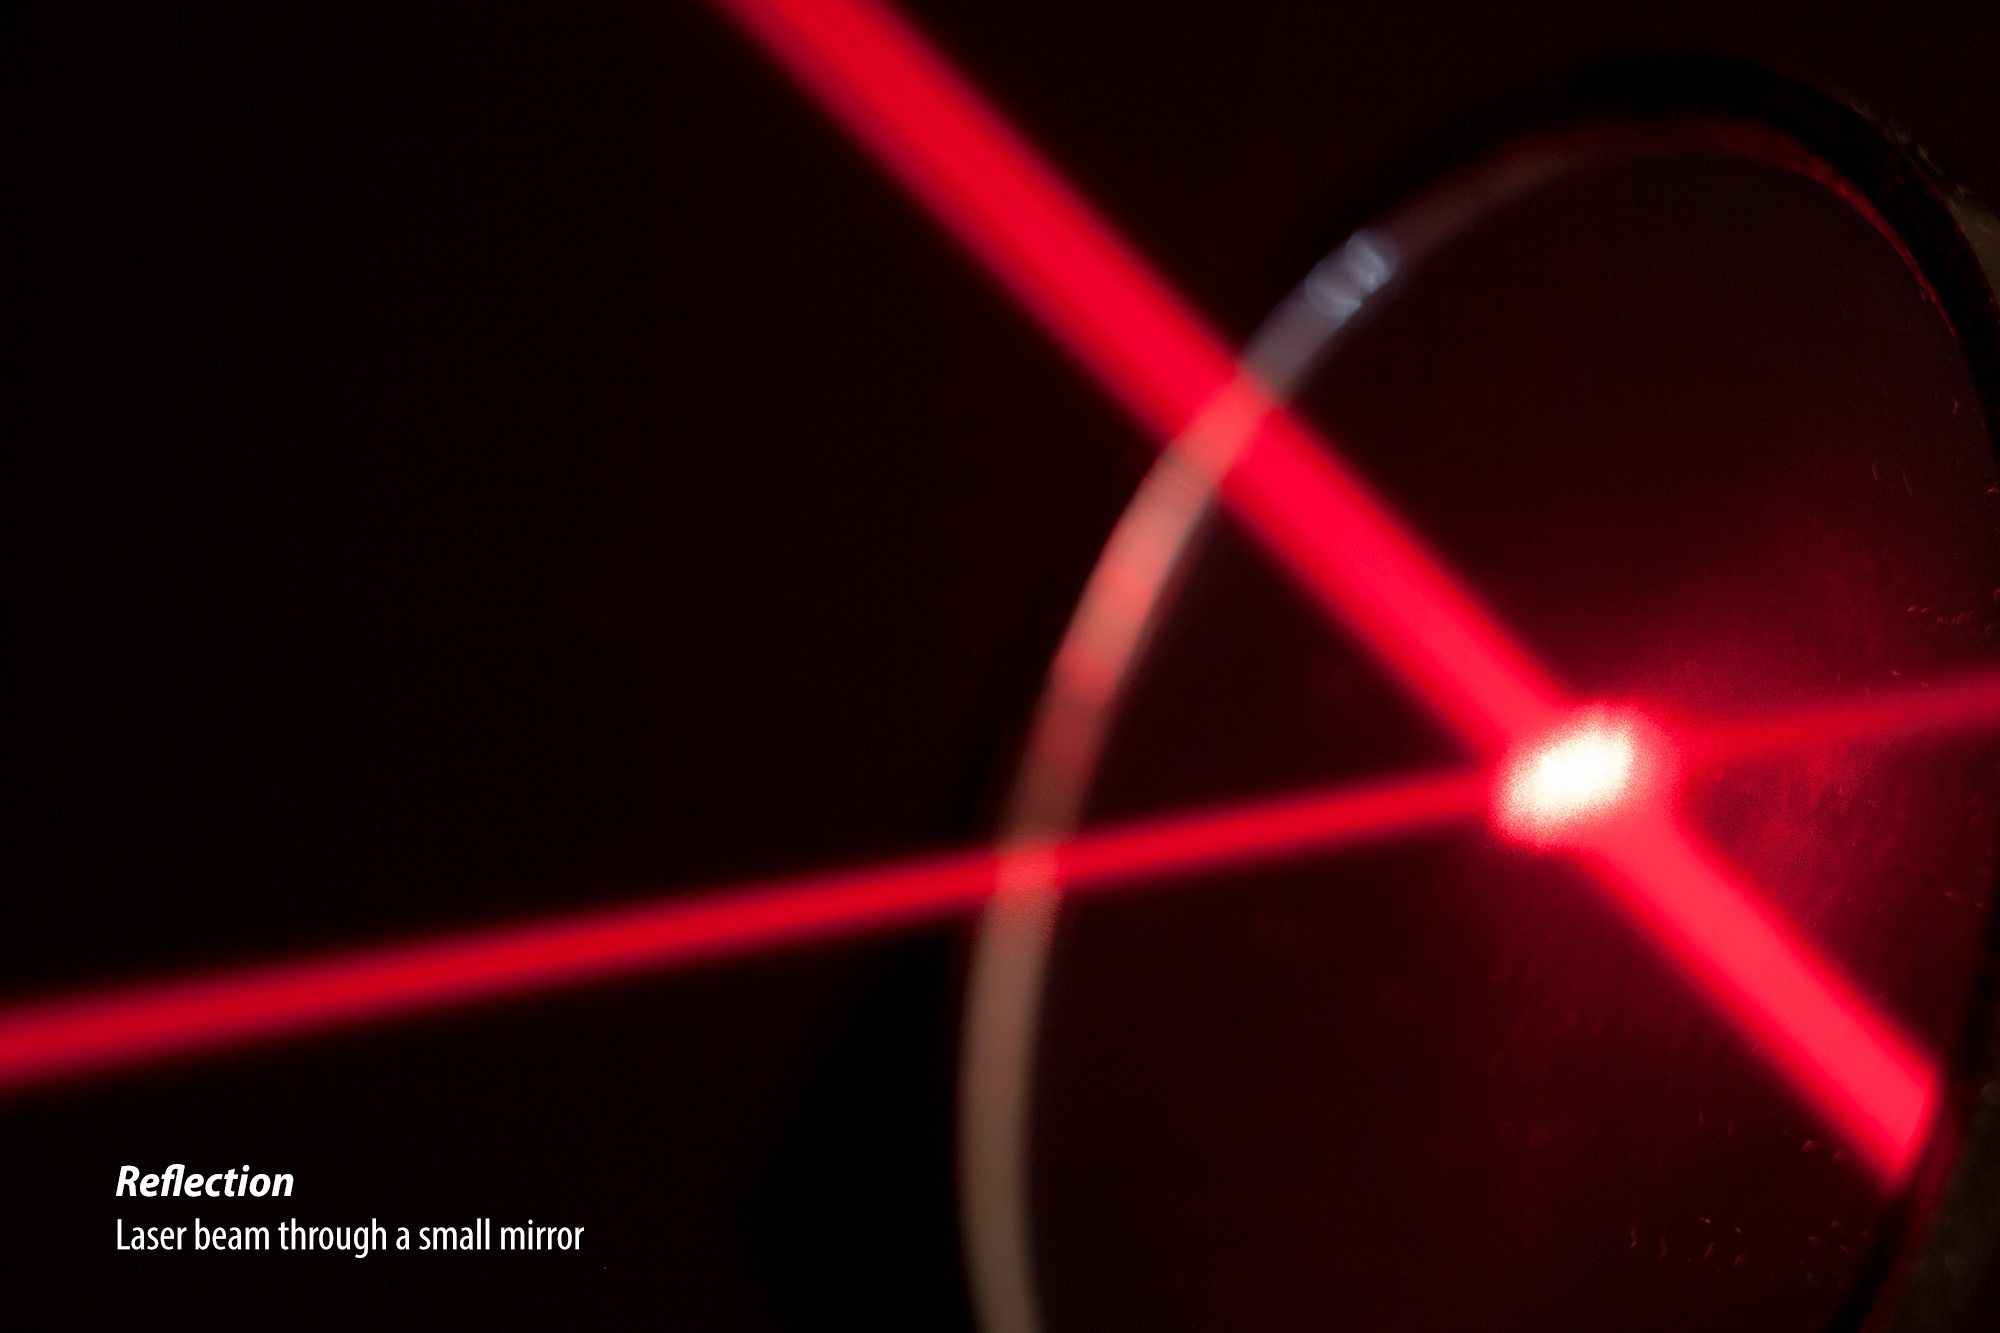 Laser beam through a small mirror